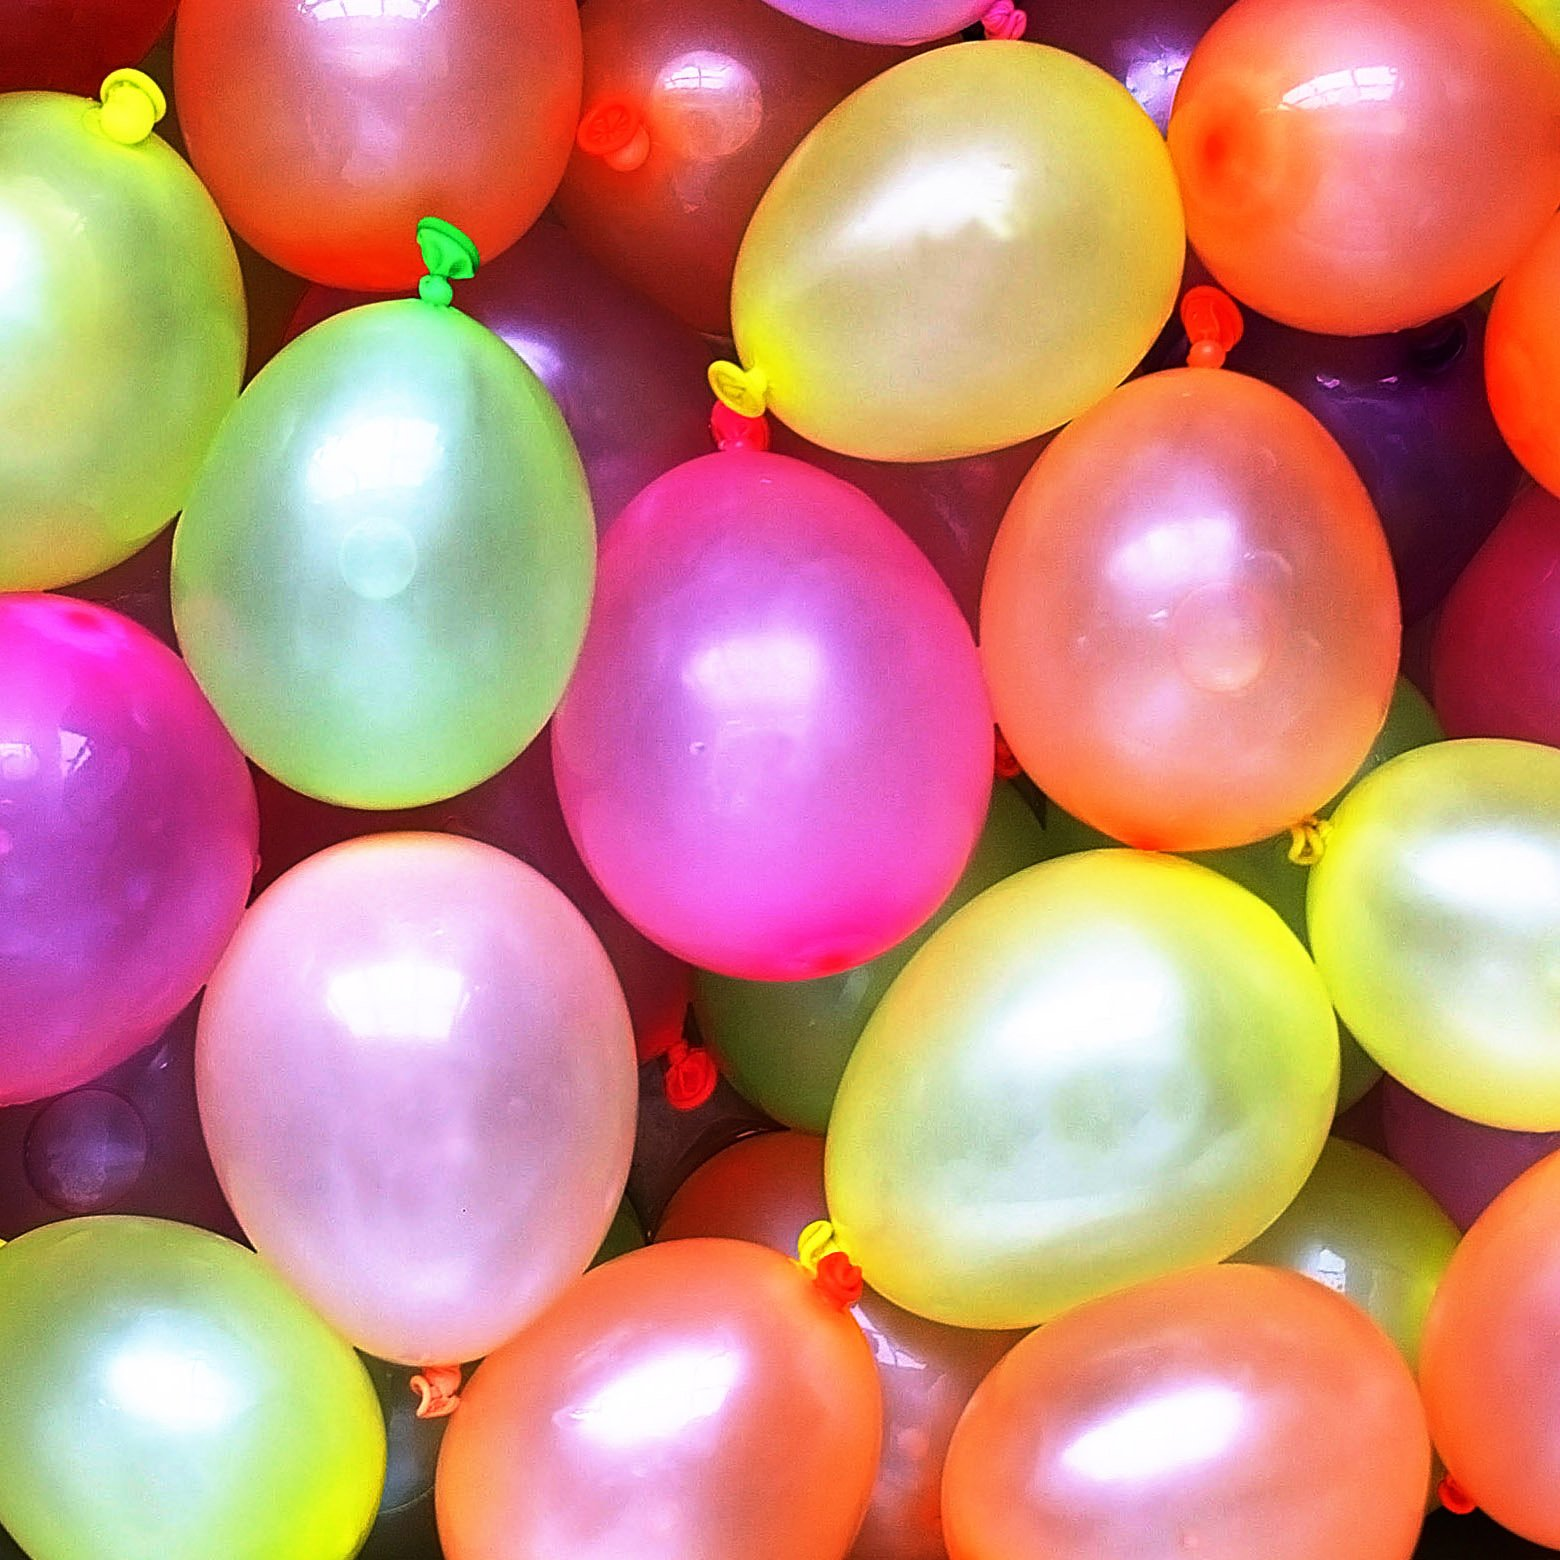 Cool & Fun {36 Count Pack} of 3'' - 6'' Inch ''Standard Size'' Water Balloon Bomb Grenades Made of Latex Rubber w/ Cool Fun Design {Neon Orange, Yellow, Purple, Pink & Green Colored} by mySimple Products